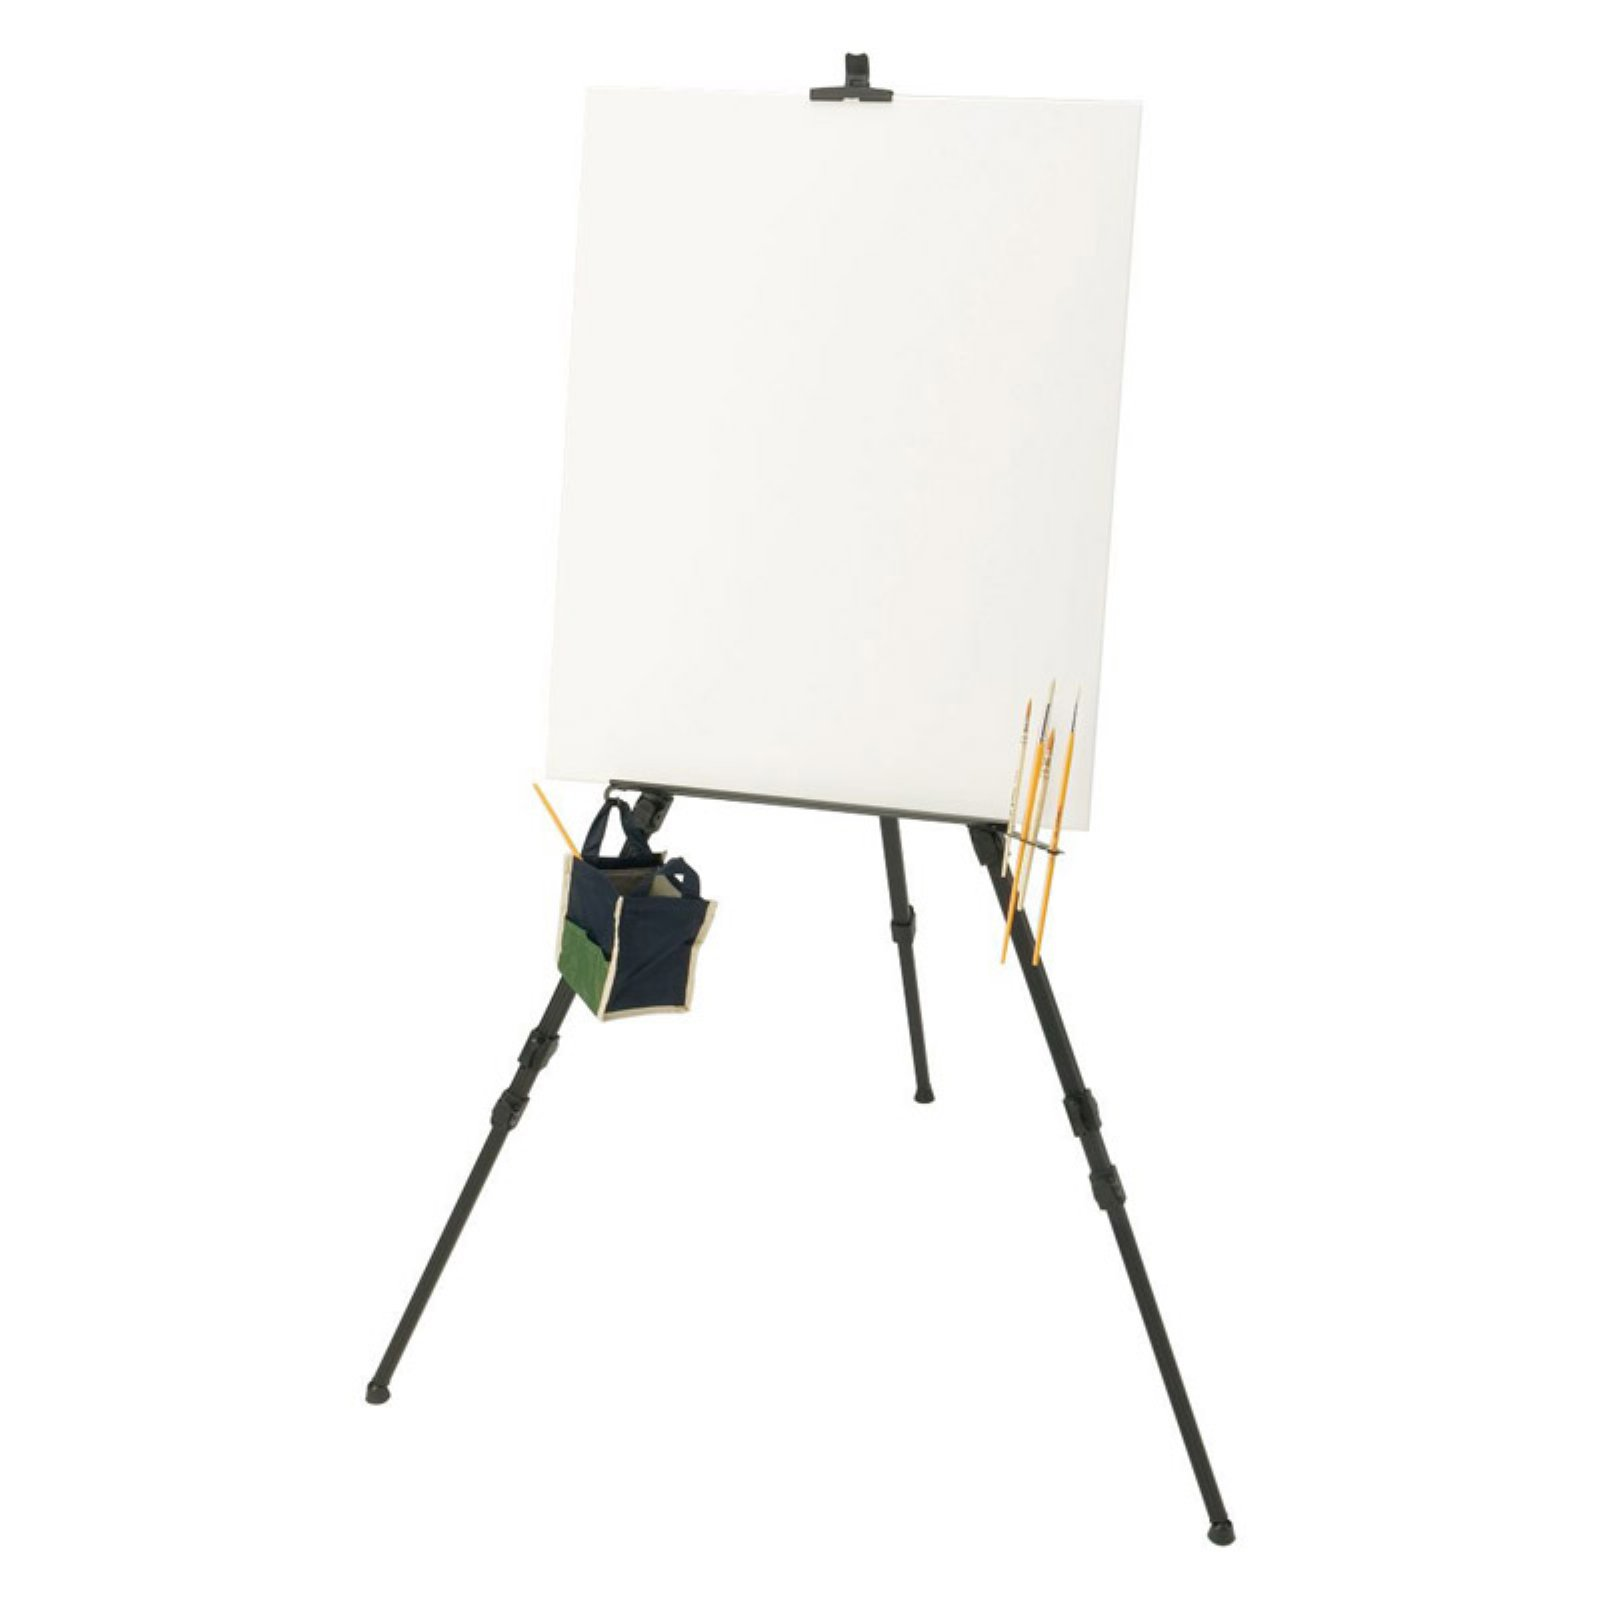 Alvin Heritage; Deluxe Large Aluminum Easel